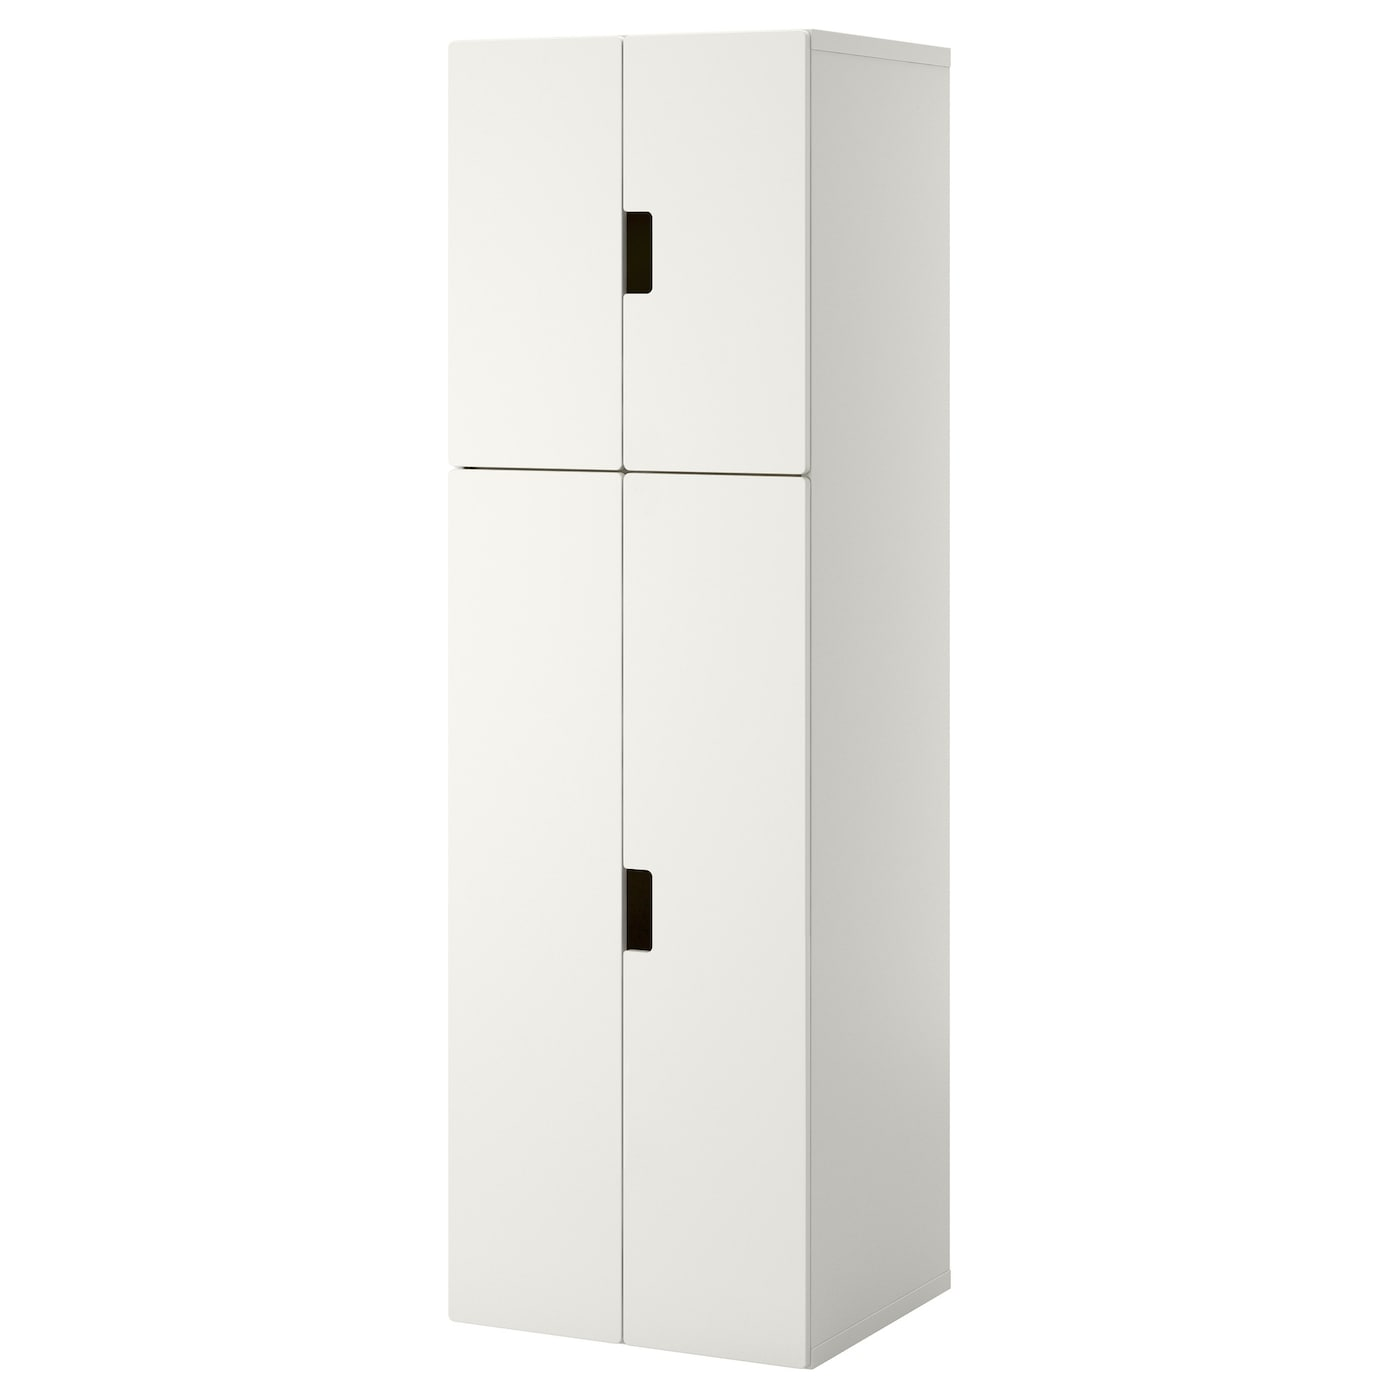 Ikea rubinetti stuva childrens storage system from ikea for Rubinetti ikea bagno